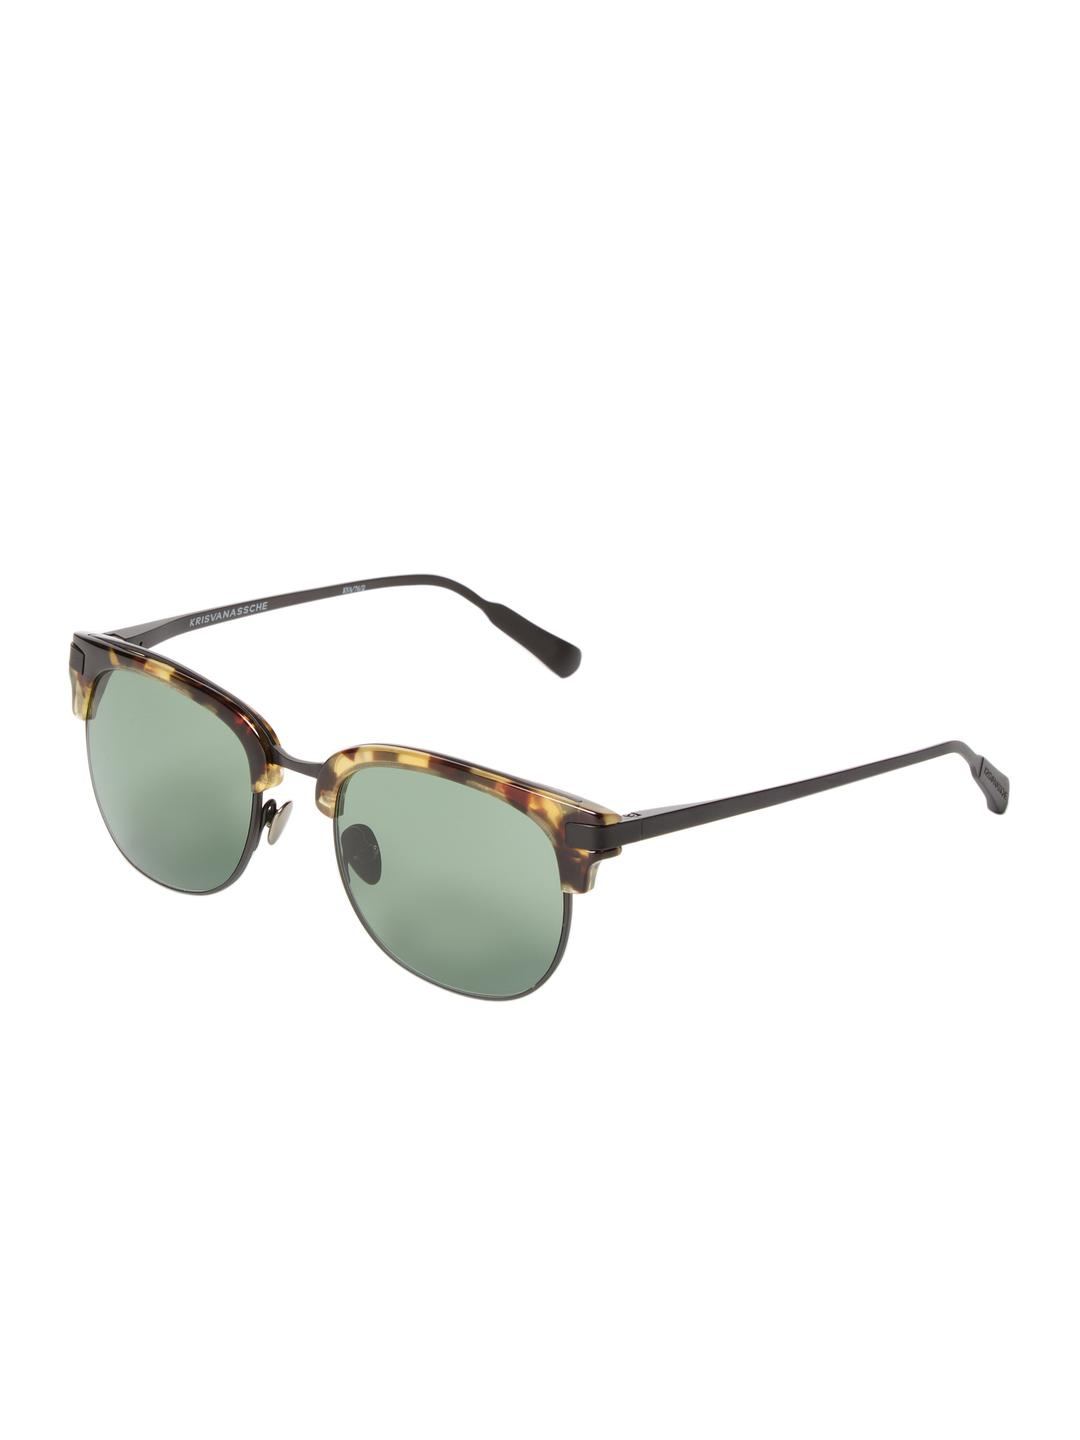 5ff8a12e24 Lyst - Kris Van Assche Padded Tinted Clubmaster Frame in Brown